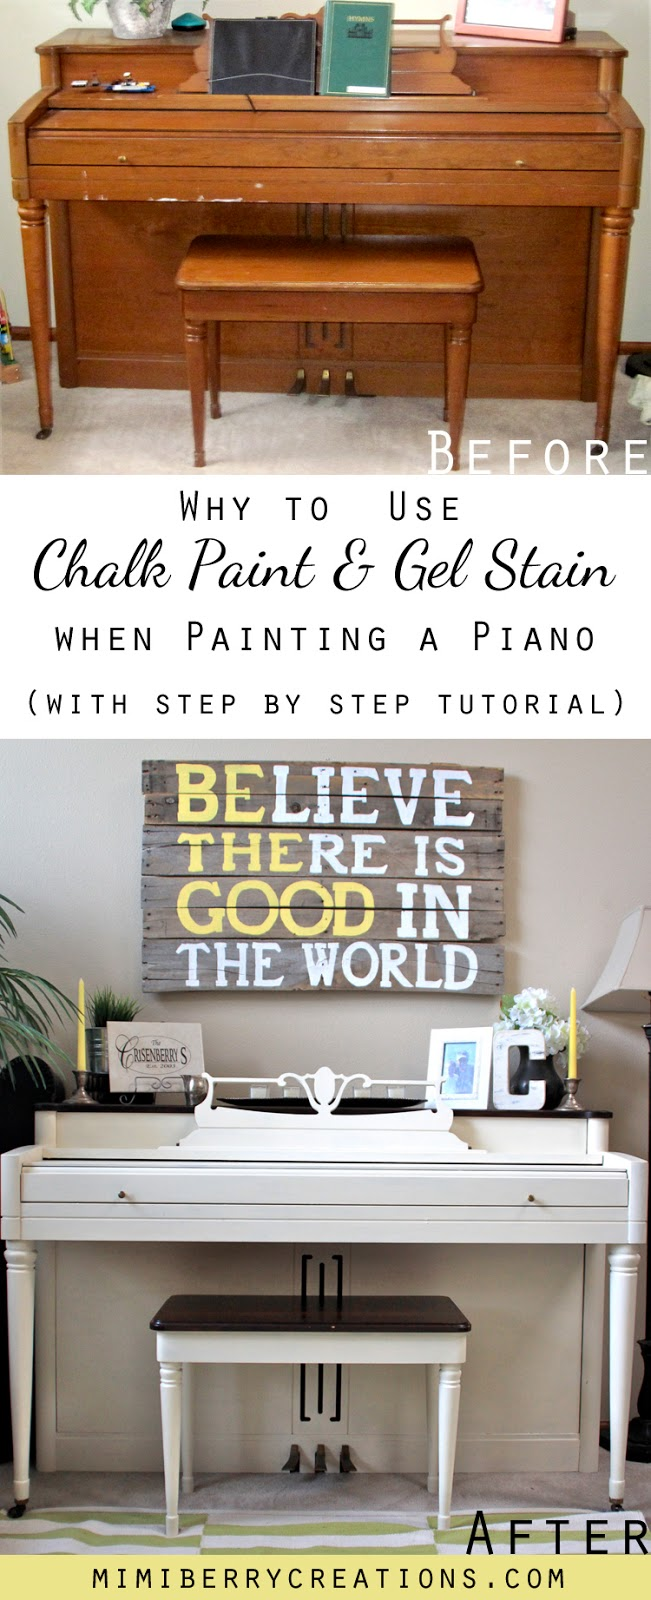 mimiberry creations: Drab to Fab Piano Transformation using Chalk ...